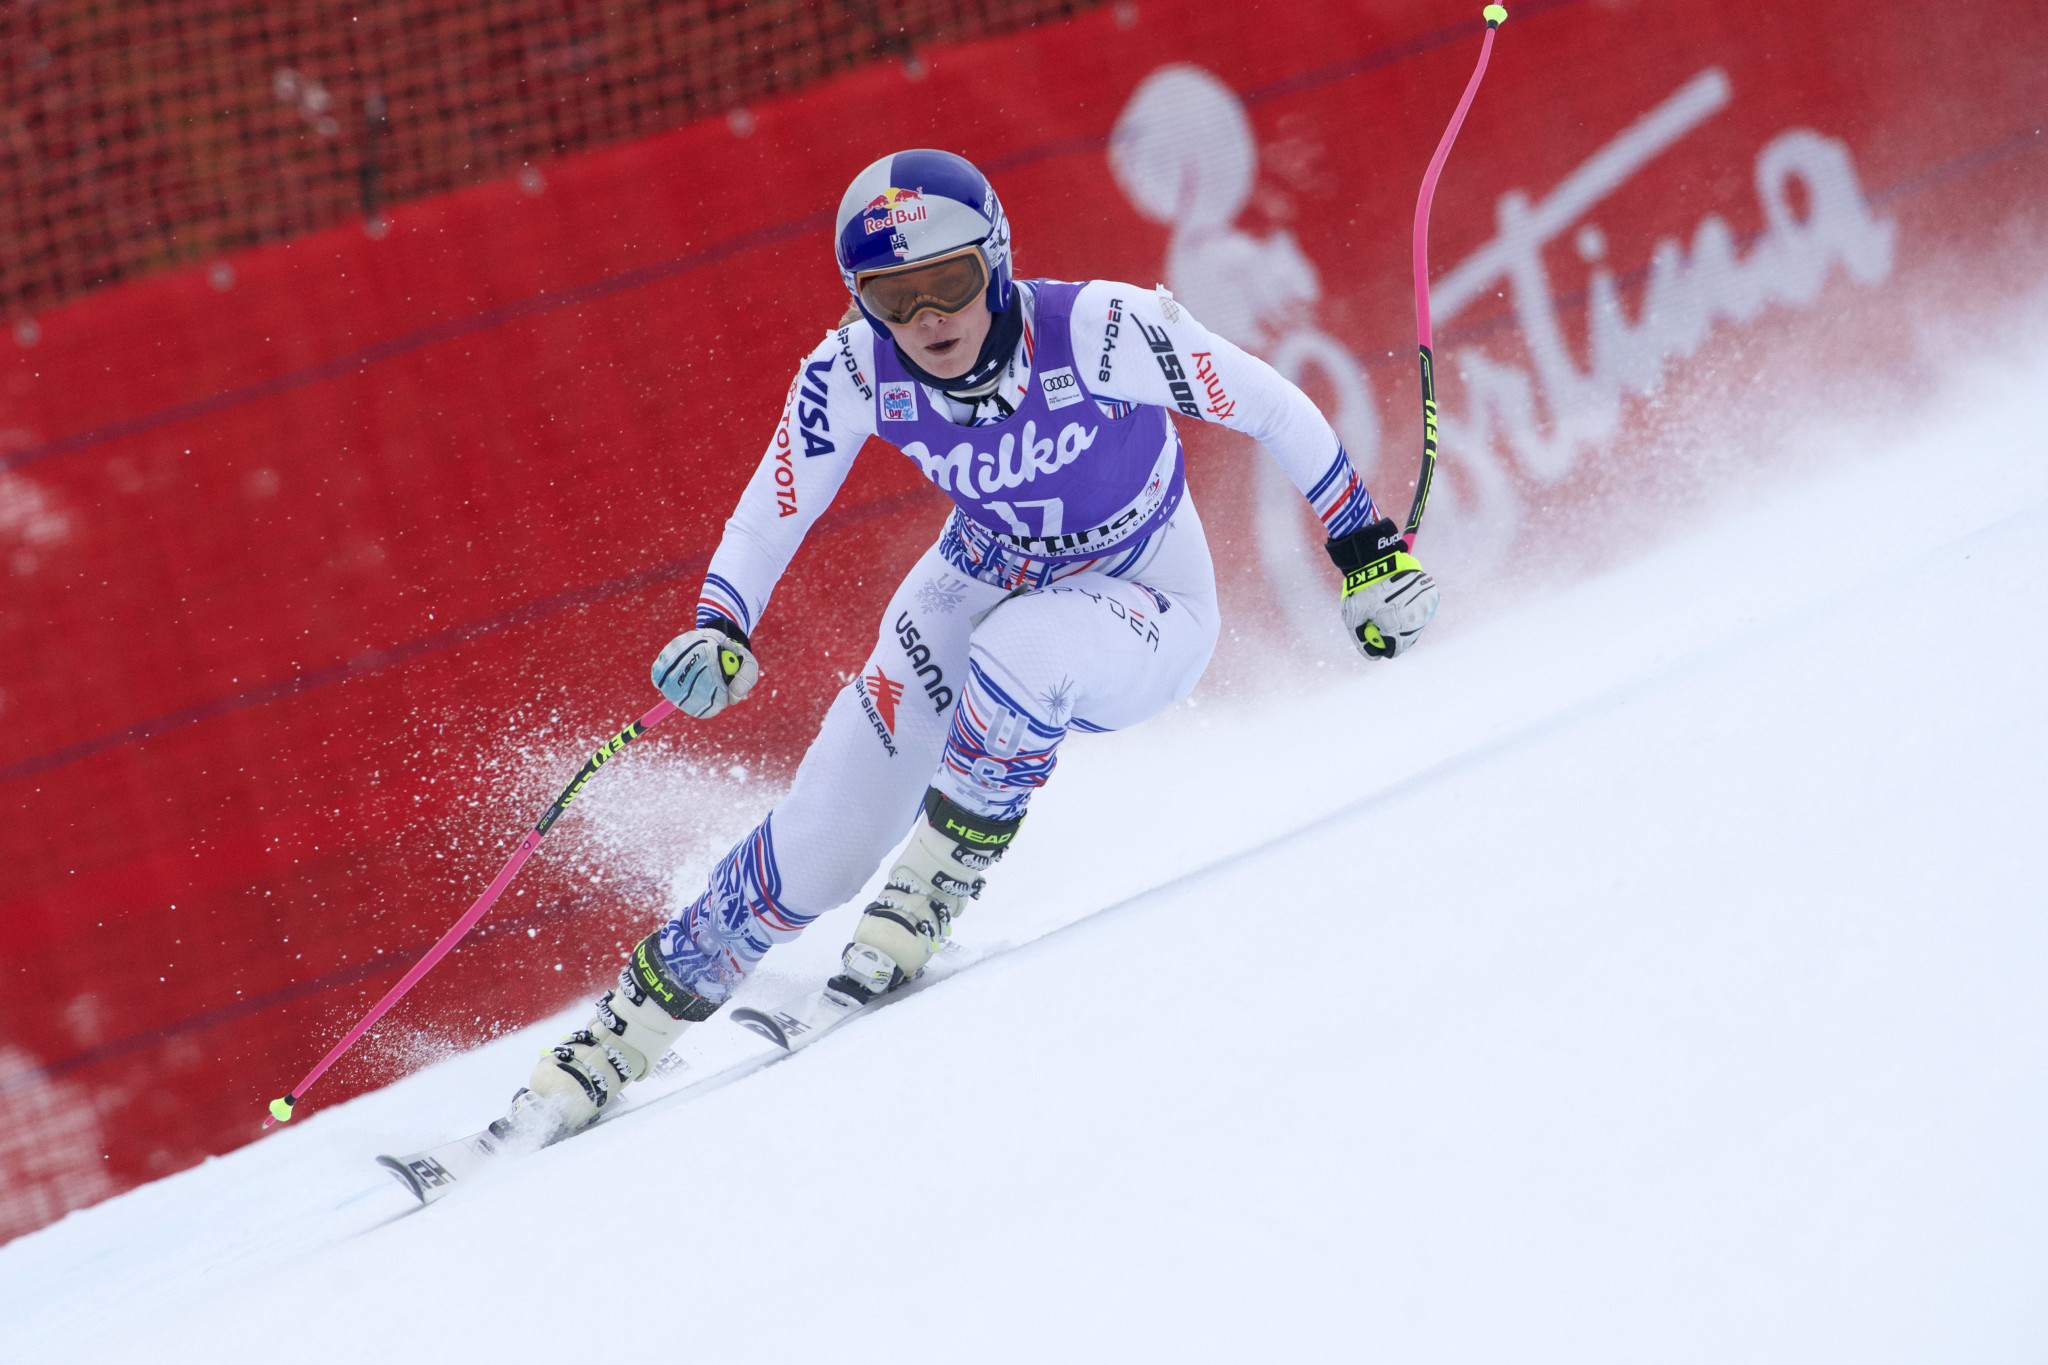 The United States' Lindsey Vonn took part in training today in Cortina d'Ampezzo ©Getty Images